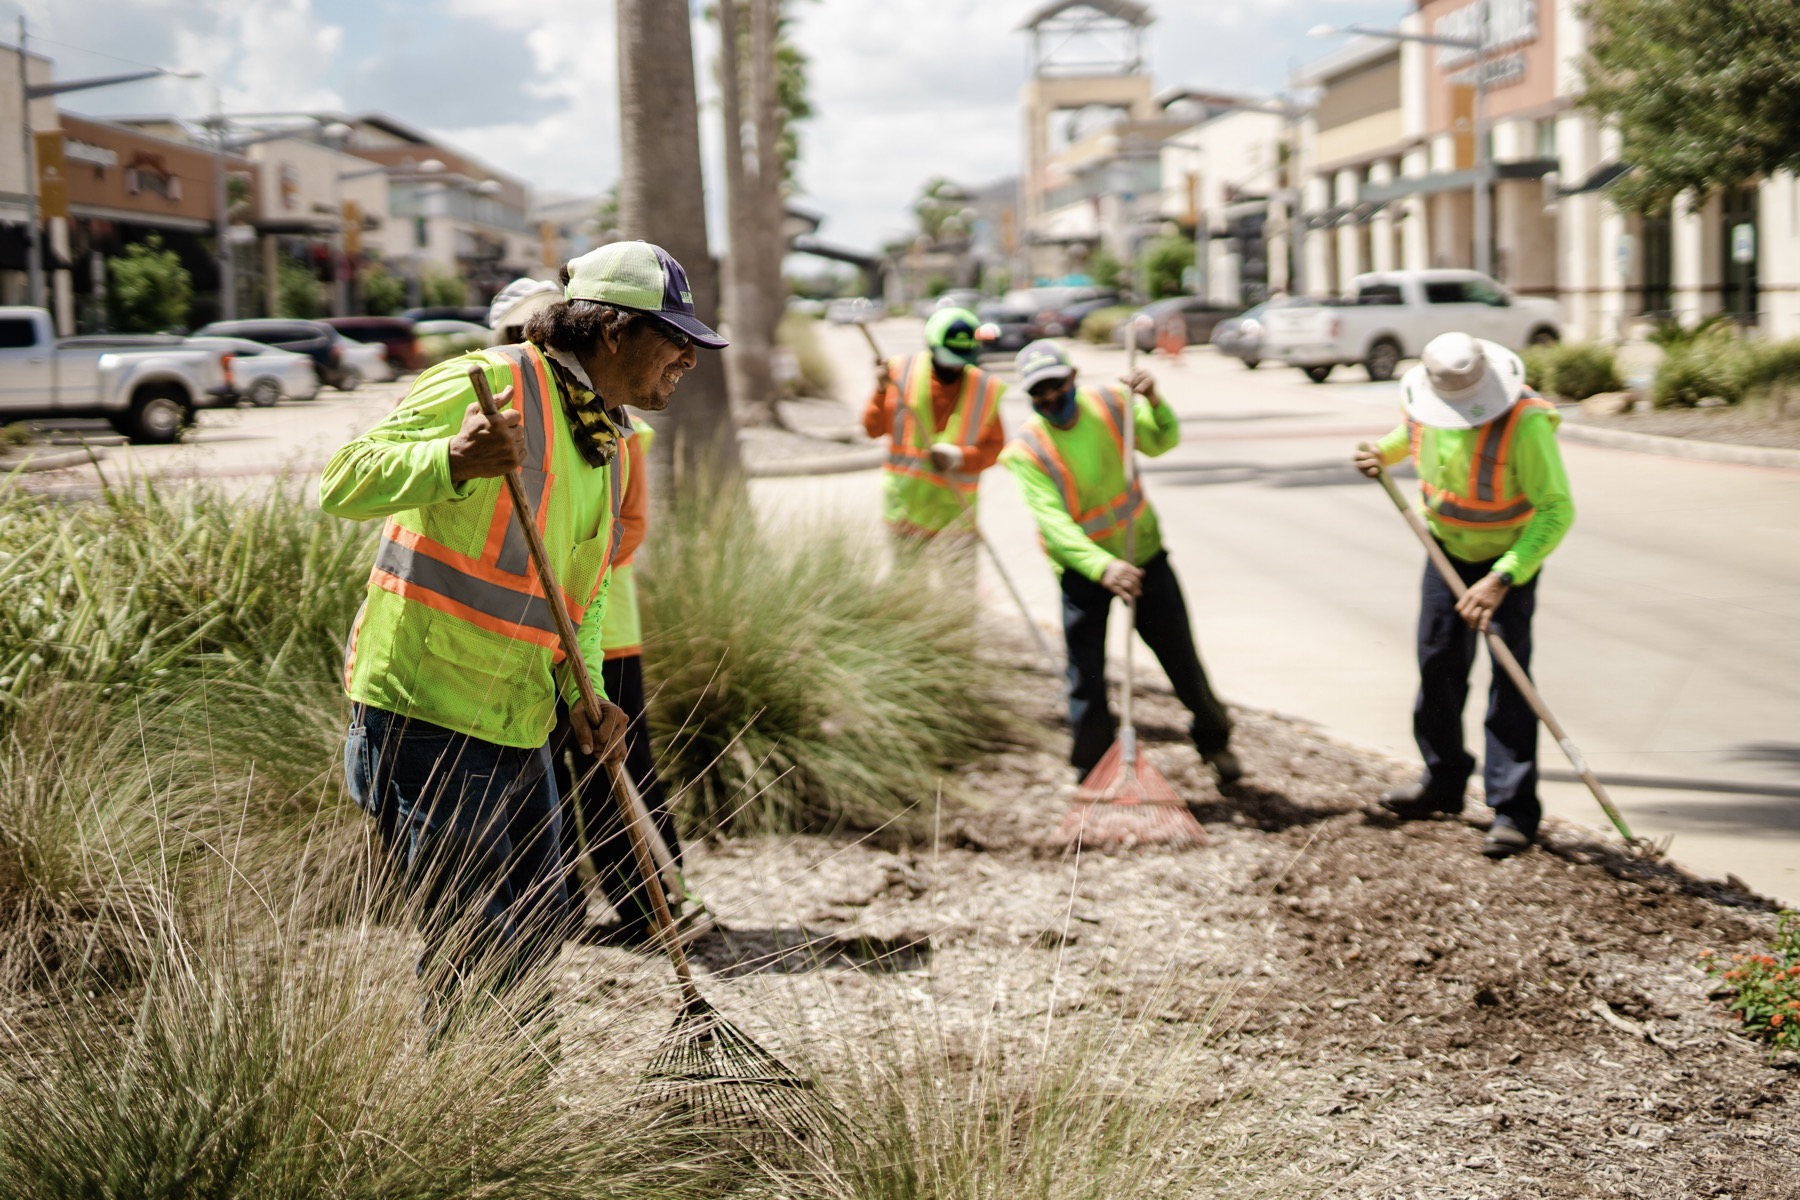 Yellowstone maintenance crew mulching a landscape bed in Dallas, TX